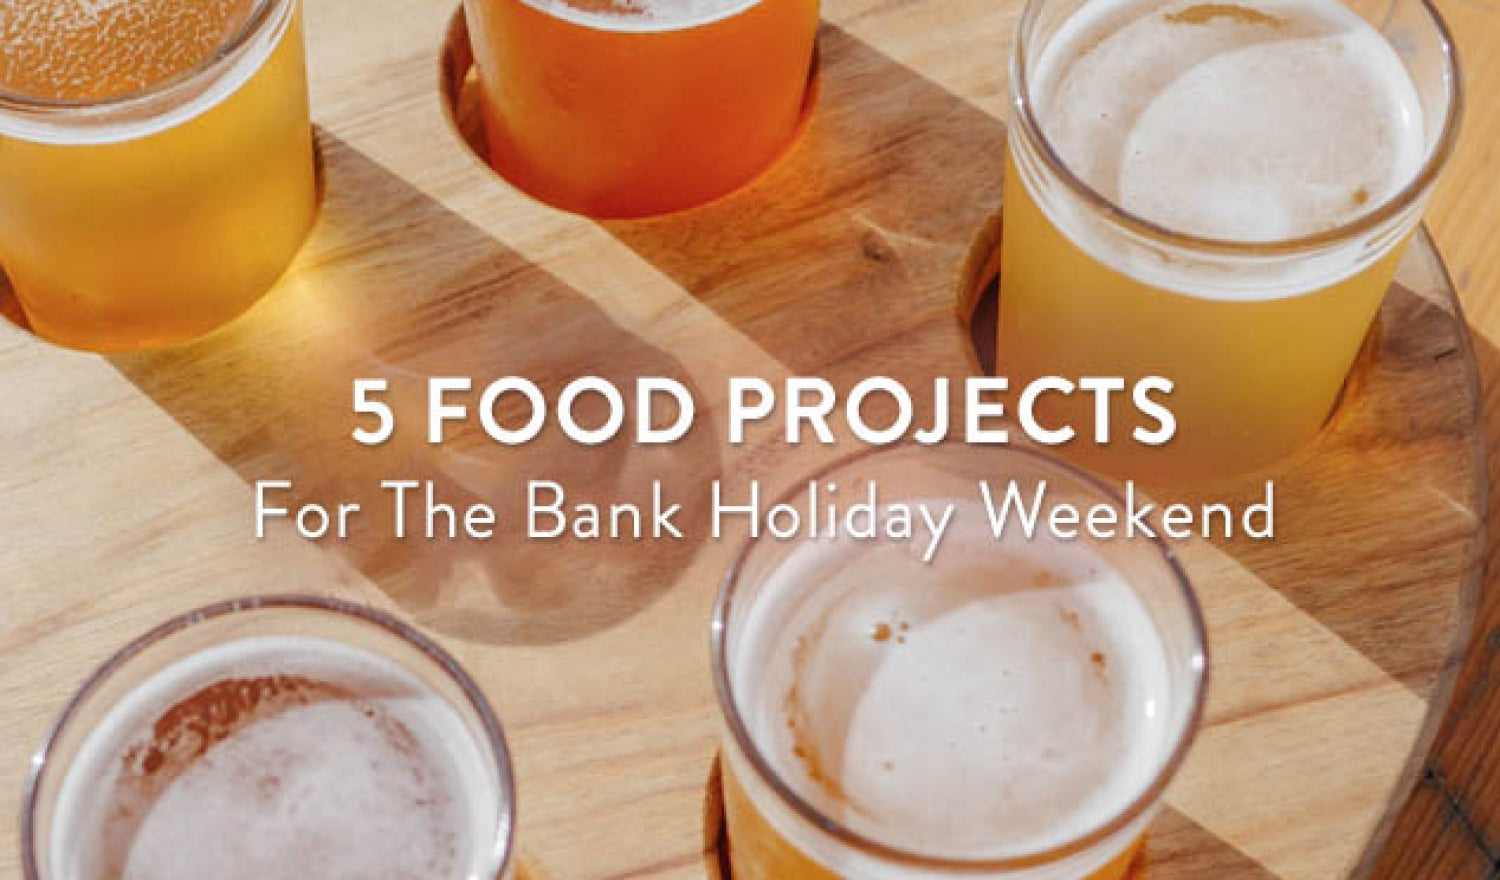 5 Food Projects for the Bank Holiday Weekend